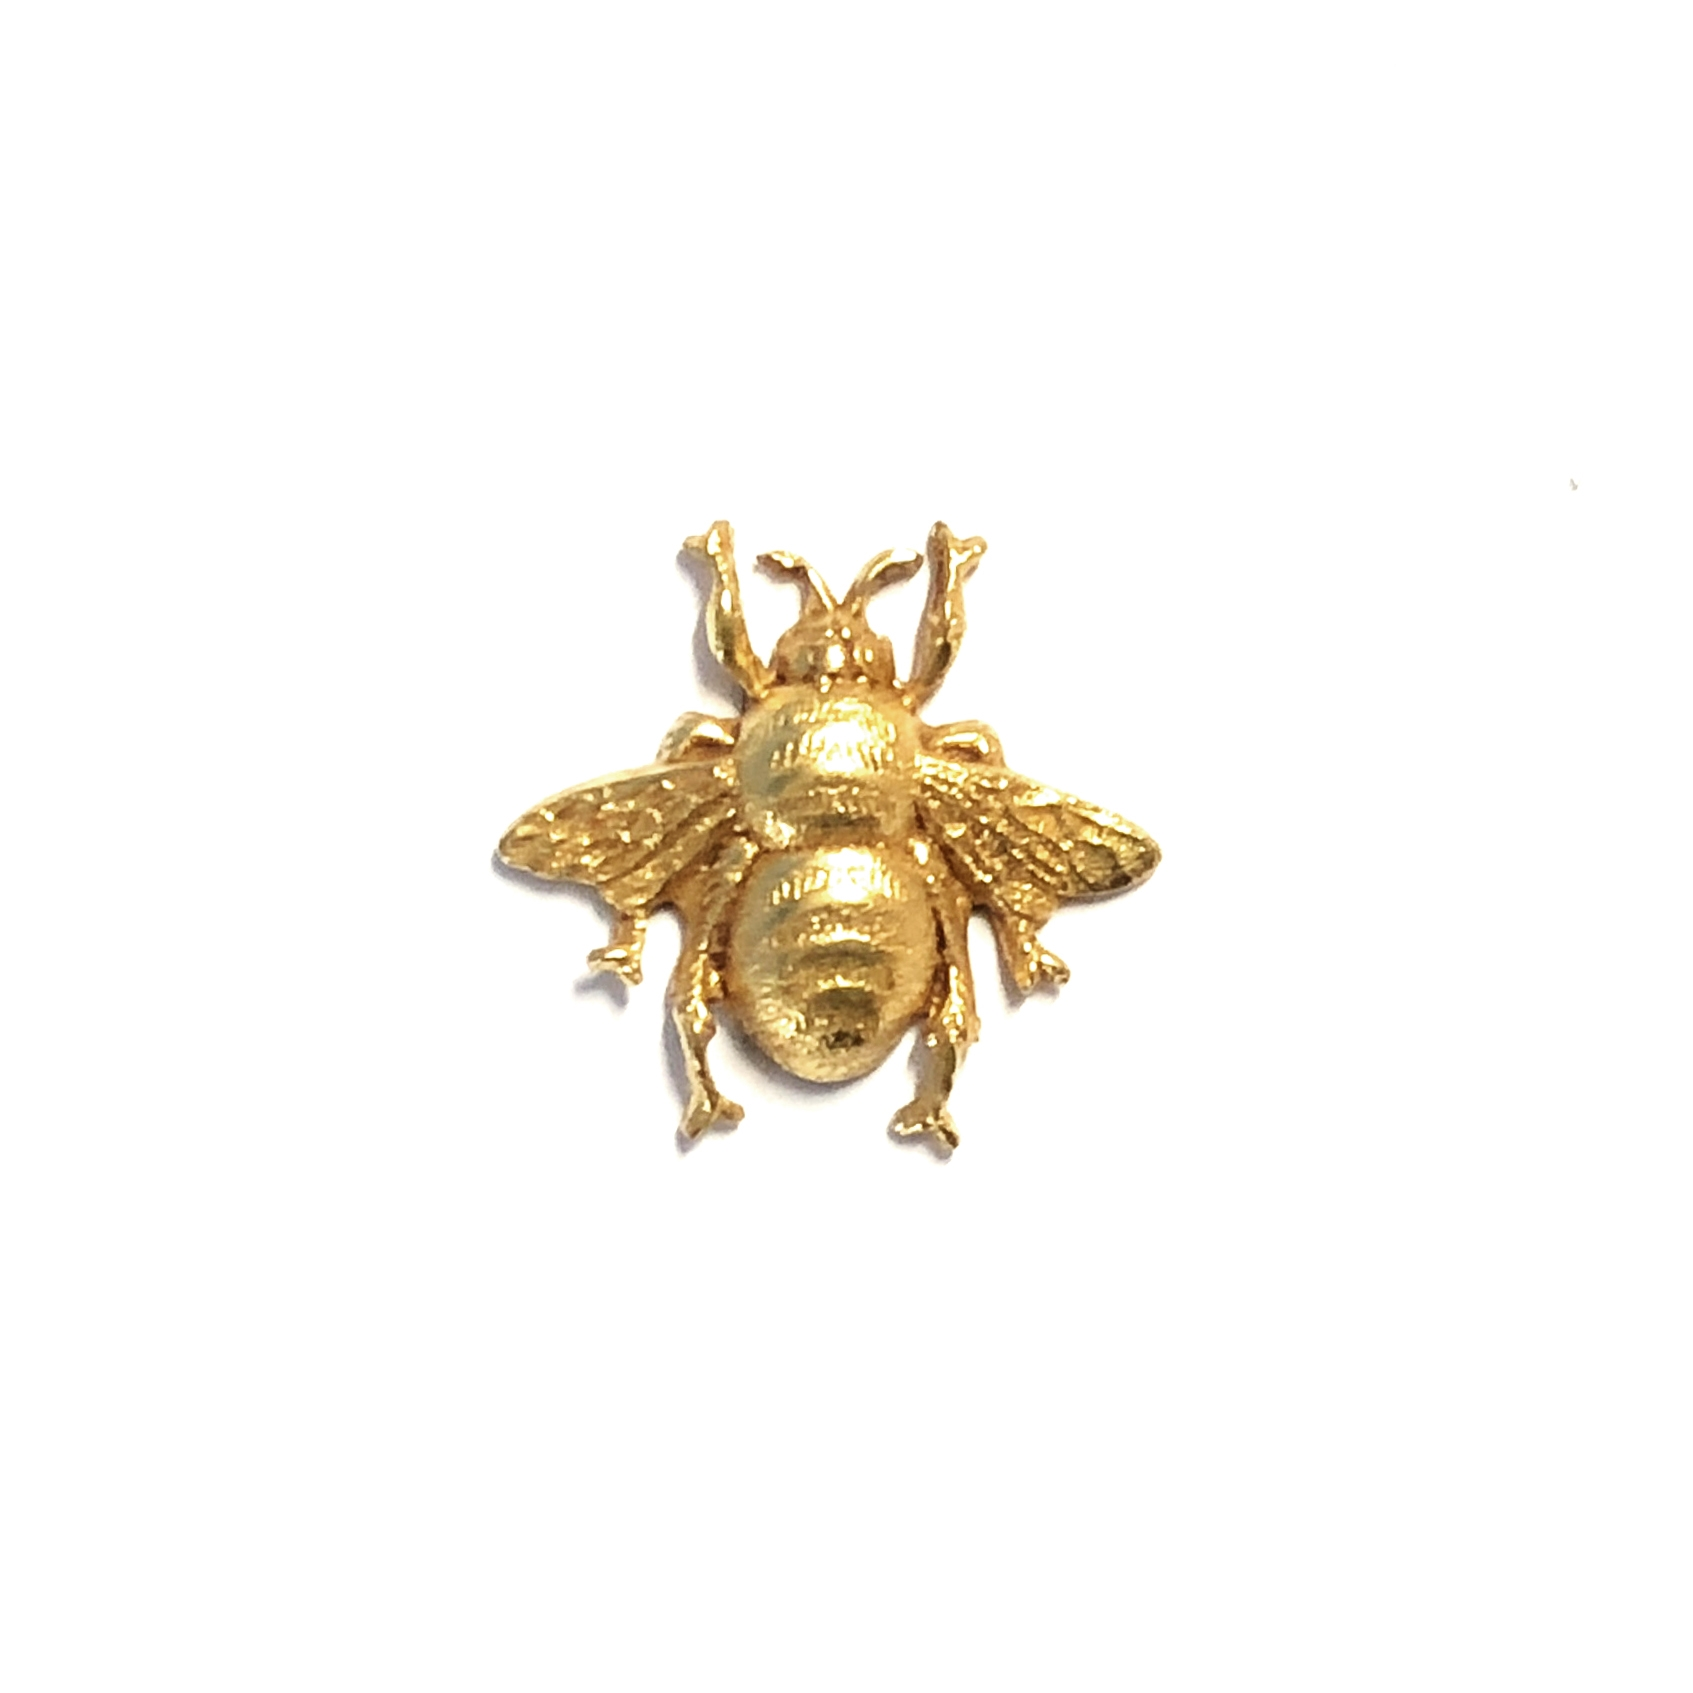 brass bees, bumble bees, classic gold, 05040, brass stampings, antique gold,  jewelry making supplies, vintage jewelry ...